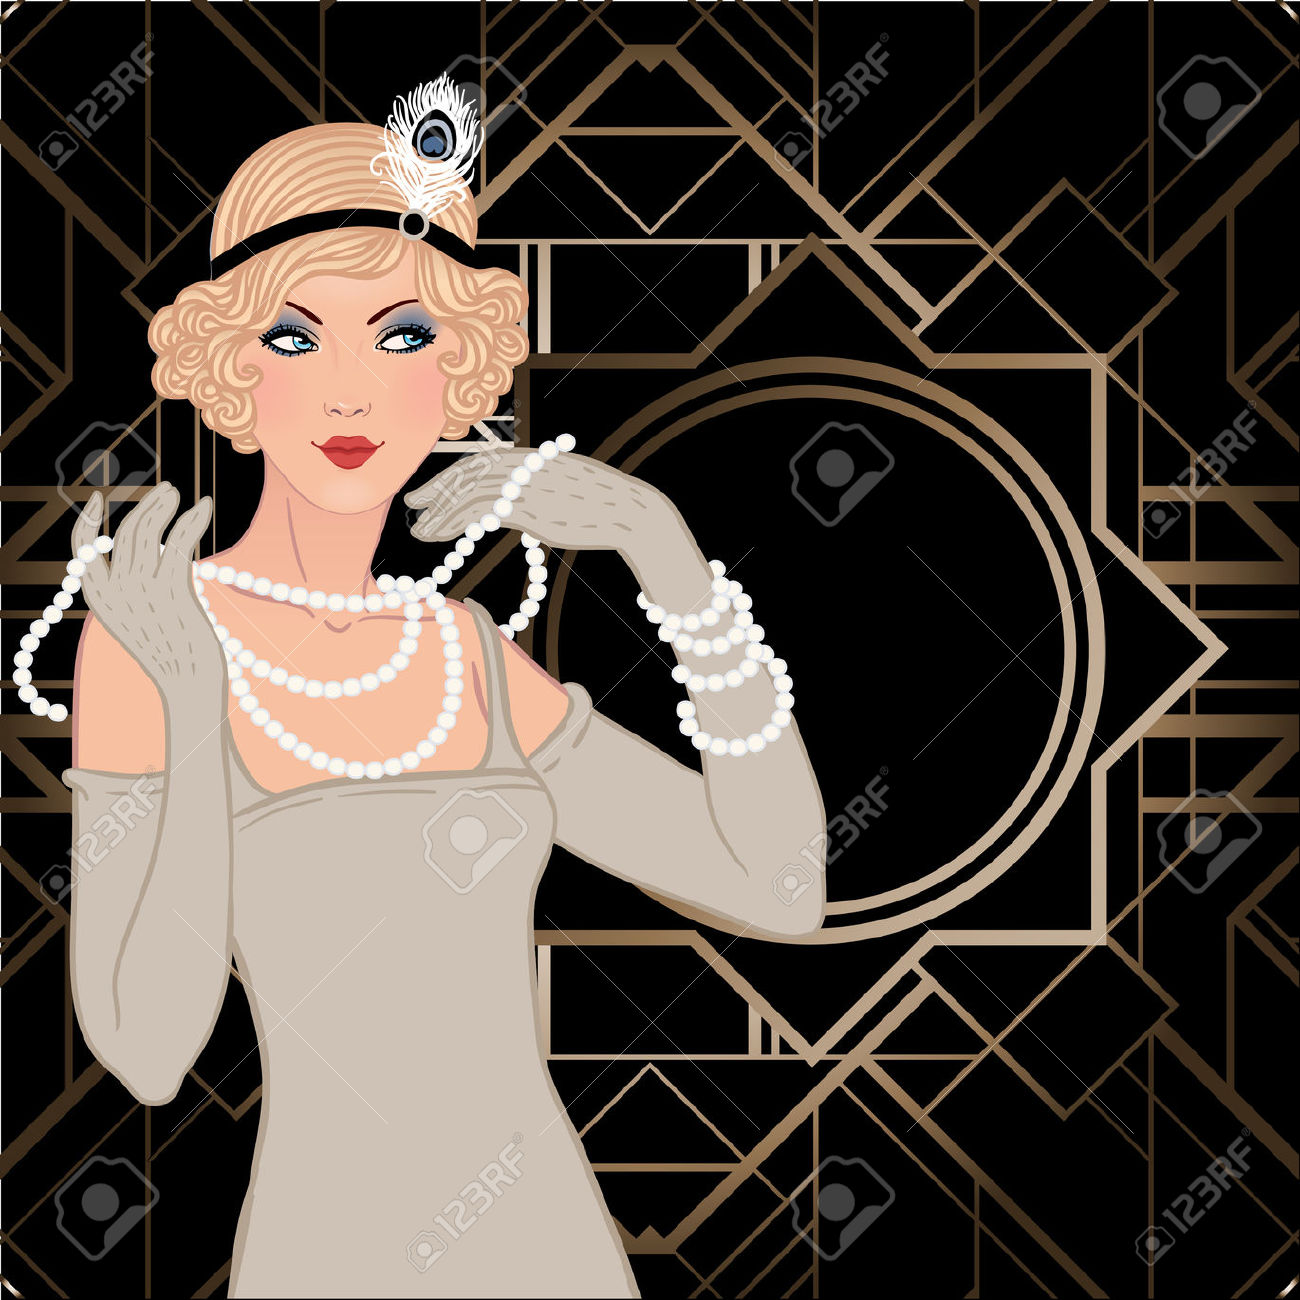 Free Vintage Flapper Cliparts, Download Free Clip Art, Free Clip Art.